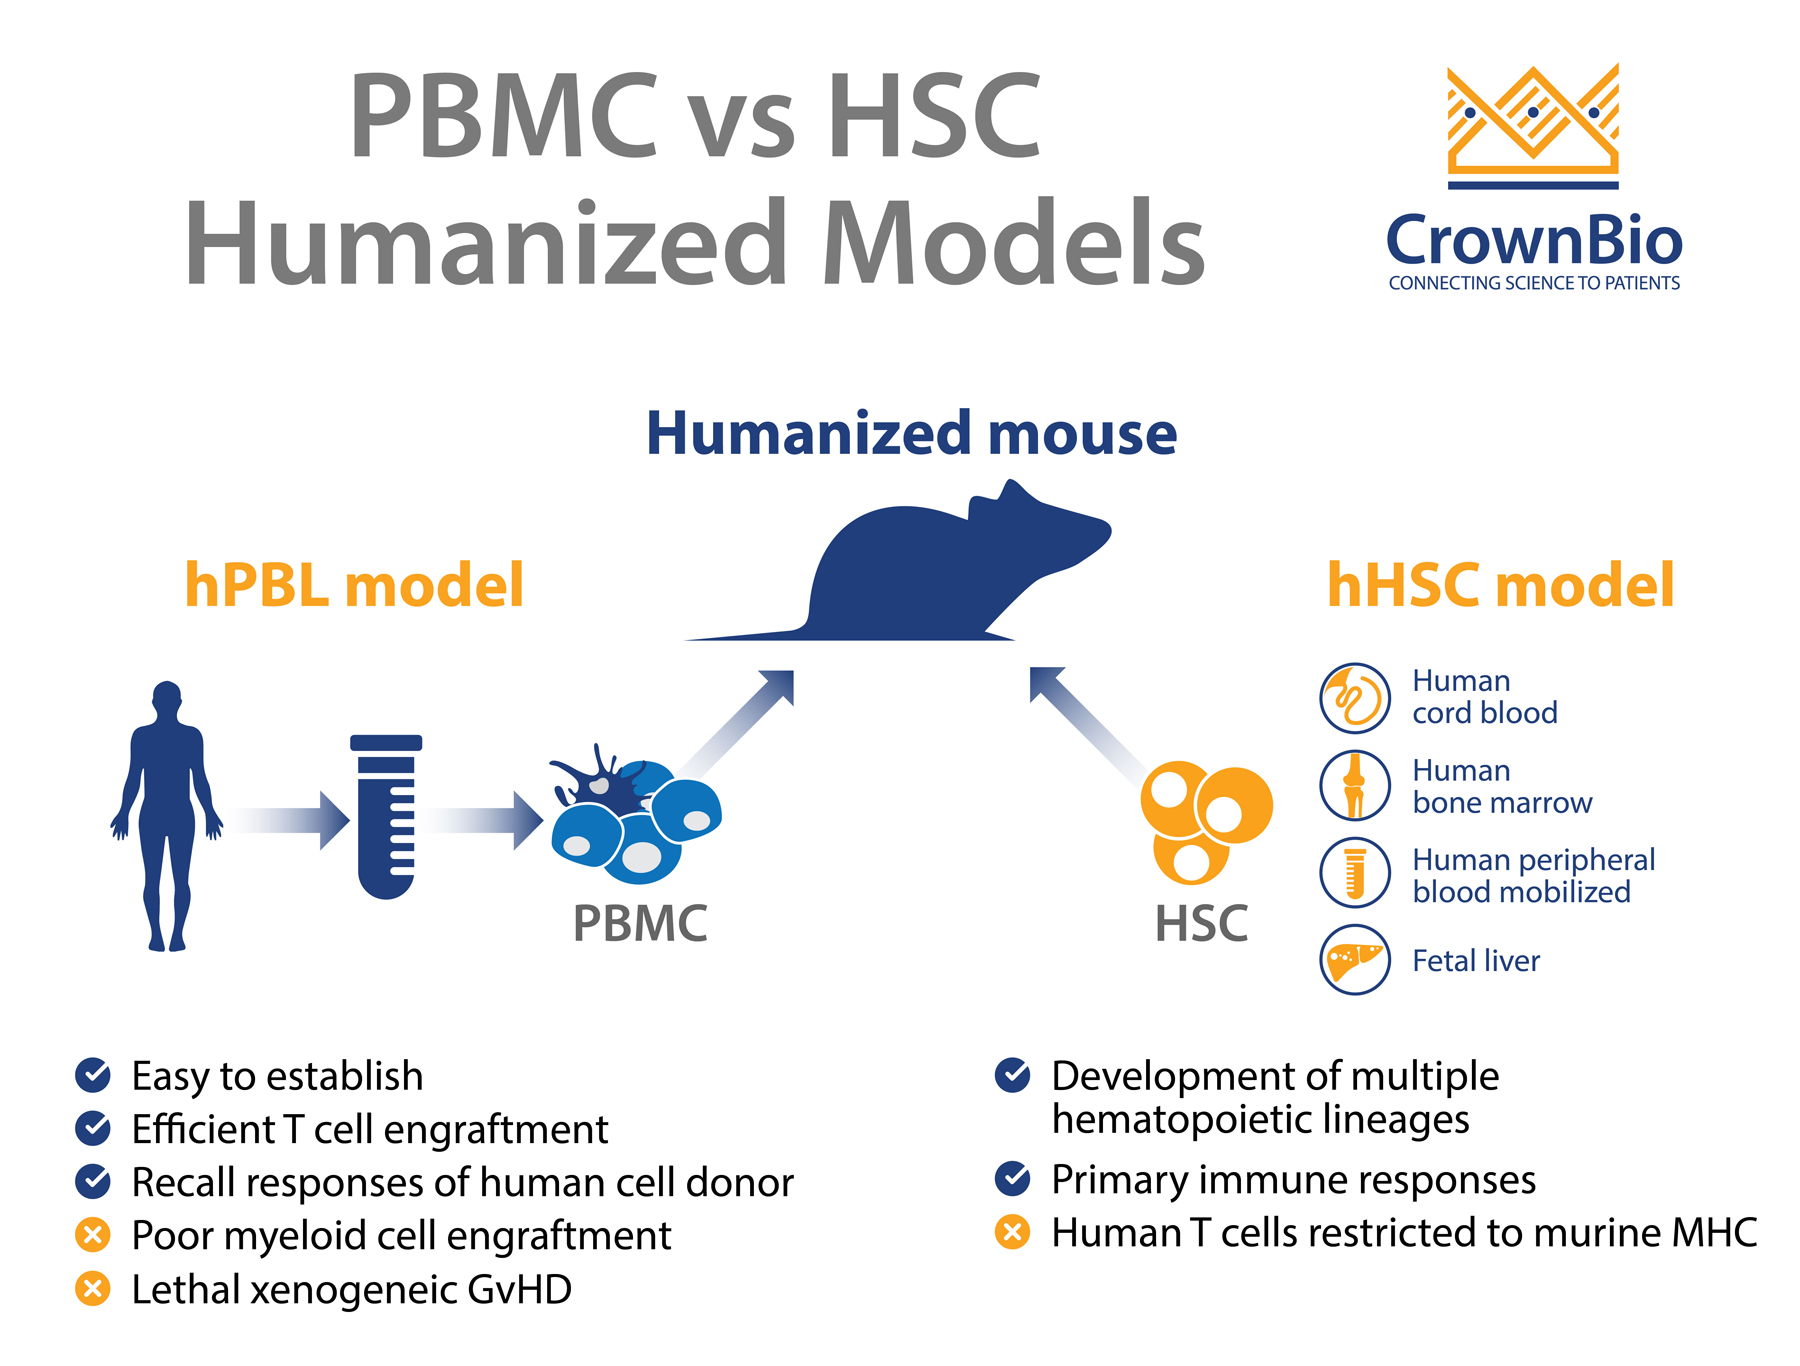 Key Differences between hPBMC and hCD34 Humanized Mouse Models